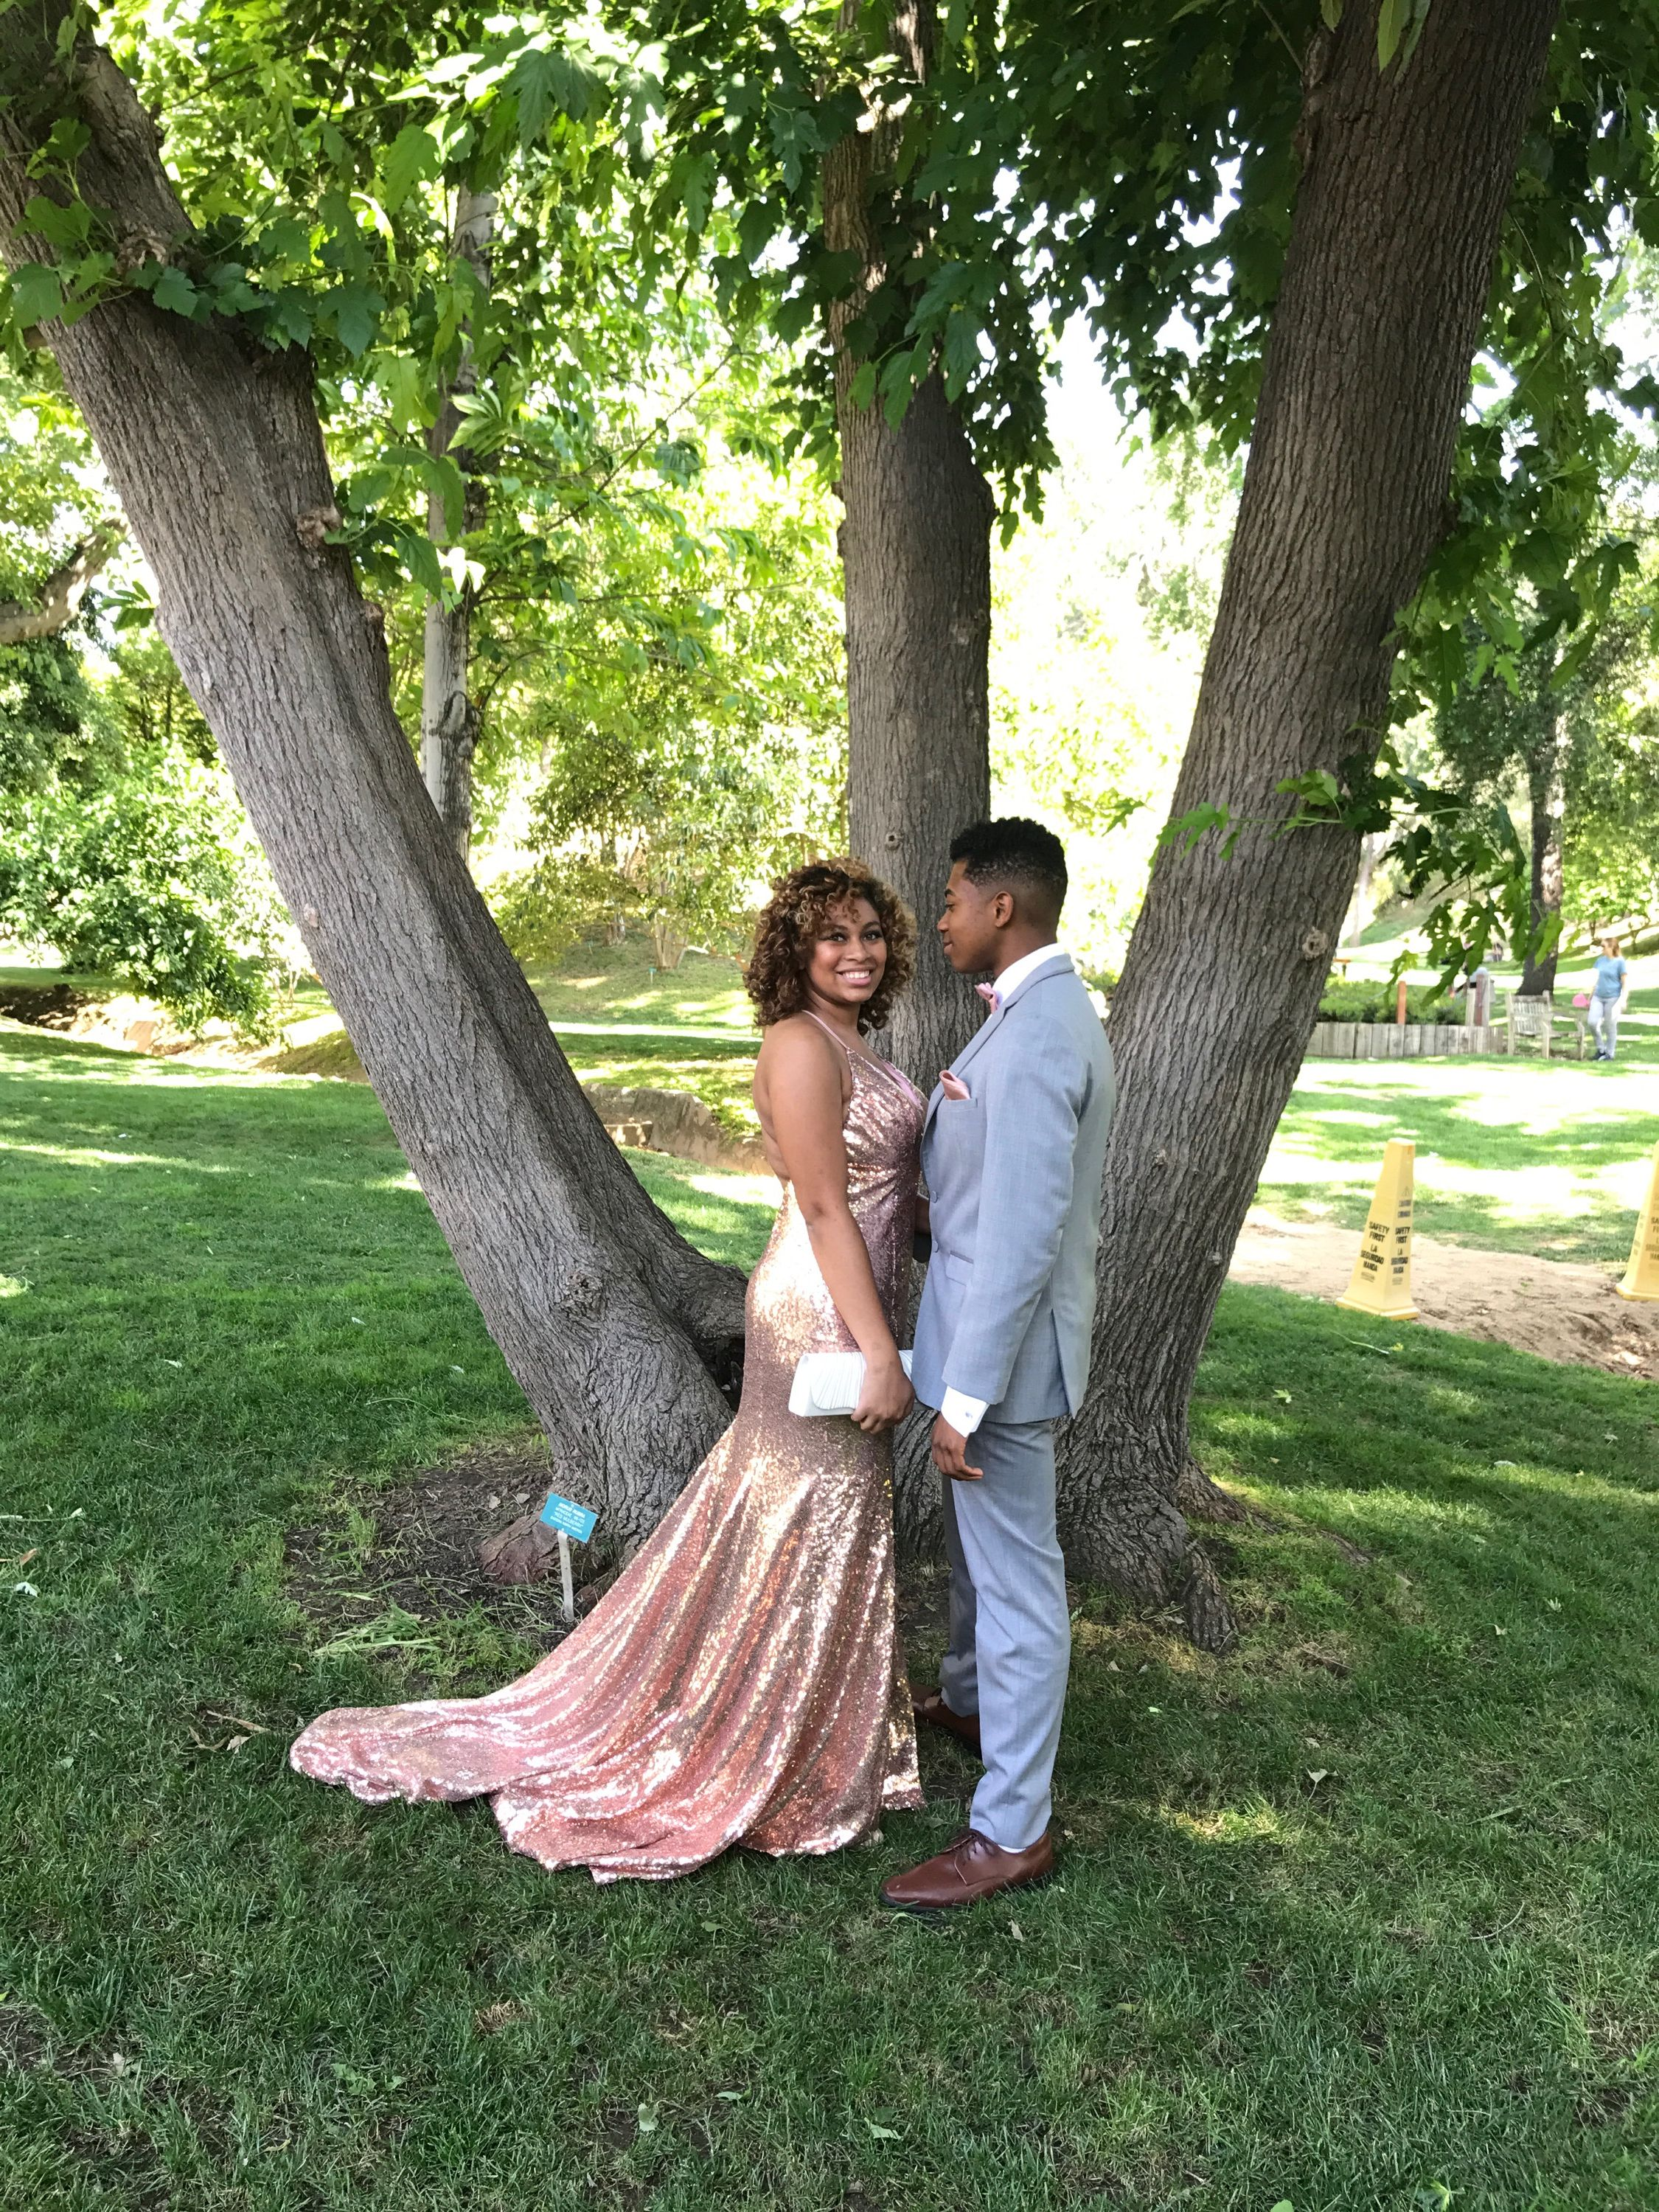 Rose Gold Prom Dress And Couple Catnotkat Instagram Rose Gold Prom Dress Gold Prom Dresses Gold Evening Dresses [ 3000 x 2250 Pixel ]